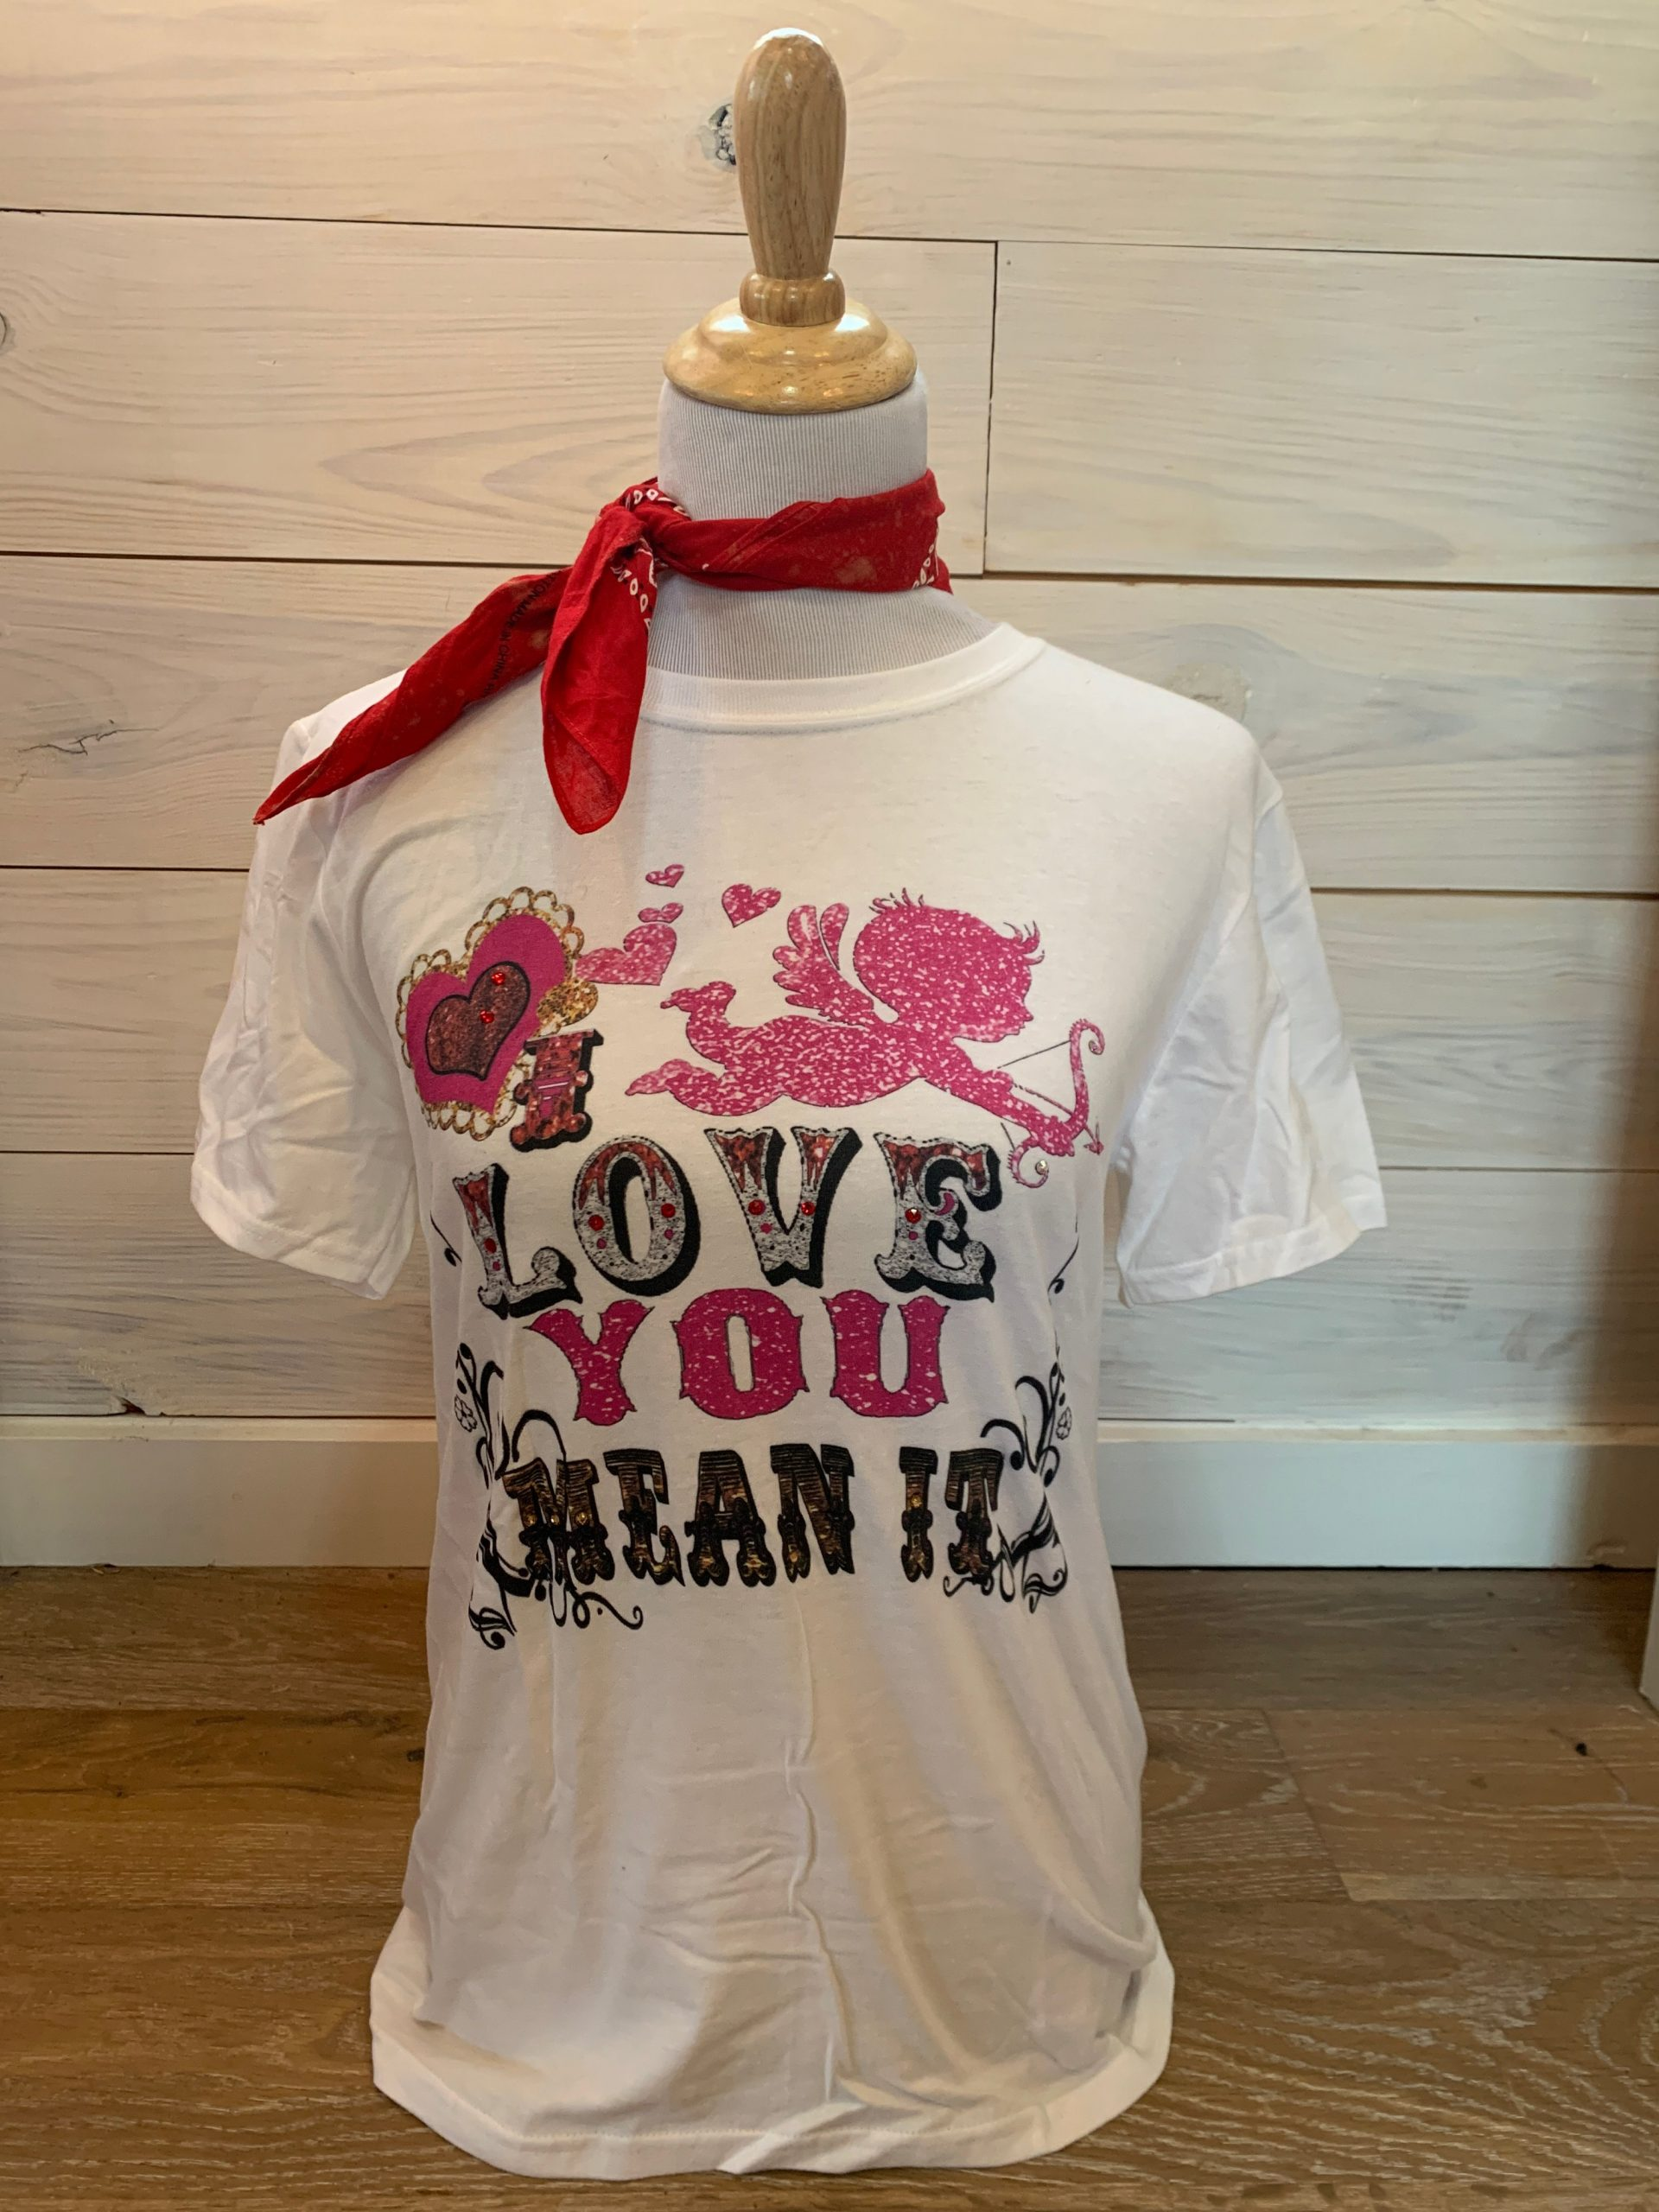 Love You Mean It White Tultex